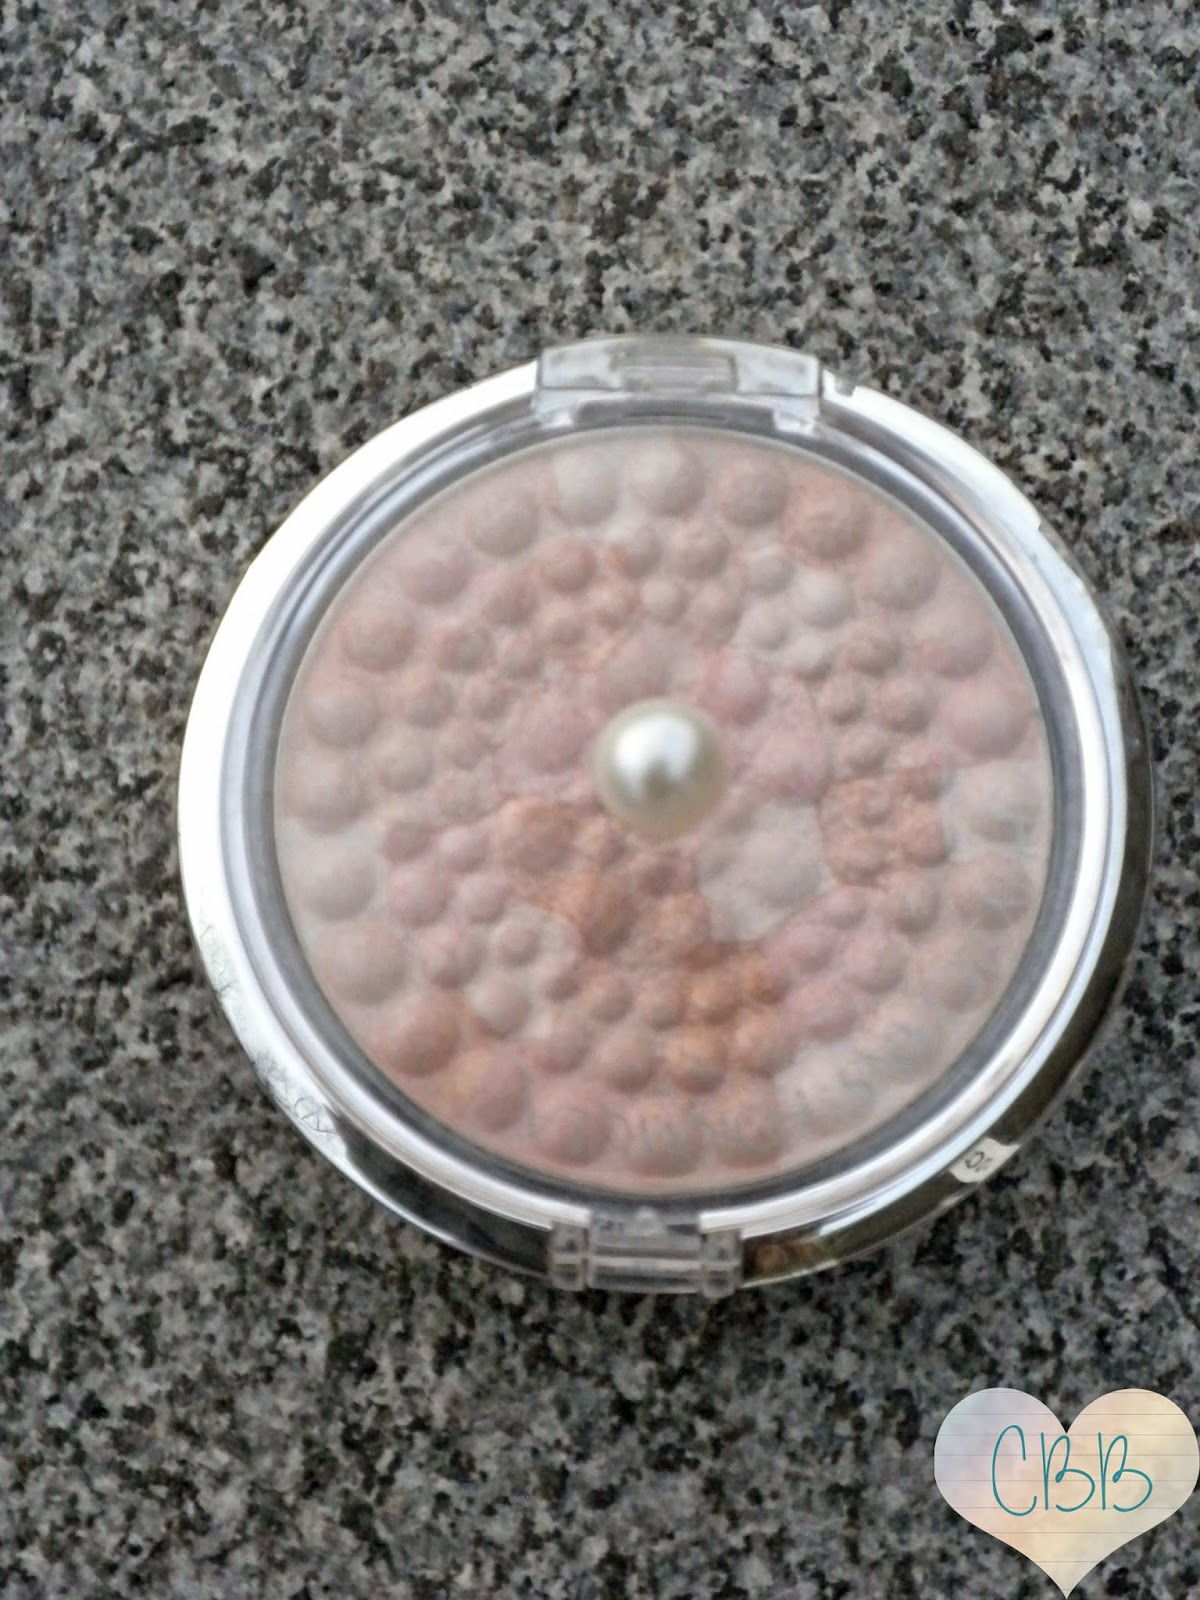 Highlighter - PHYSICIANS FORMULA Mineral Glow Pearls in Translucent Pearl ($14 for .28oz)